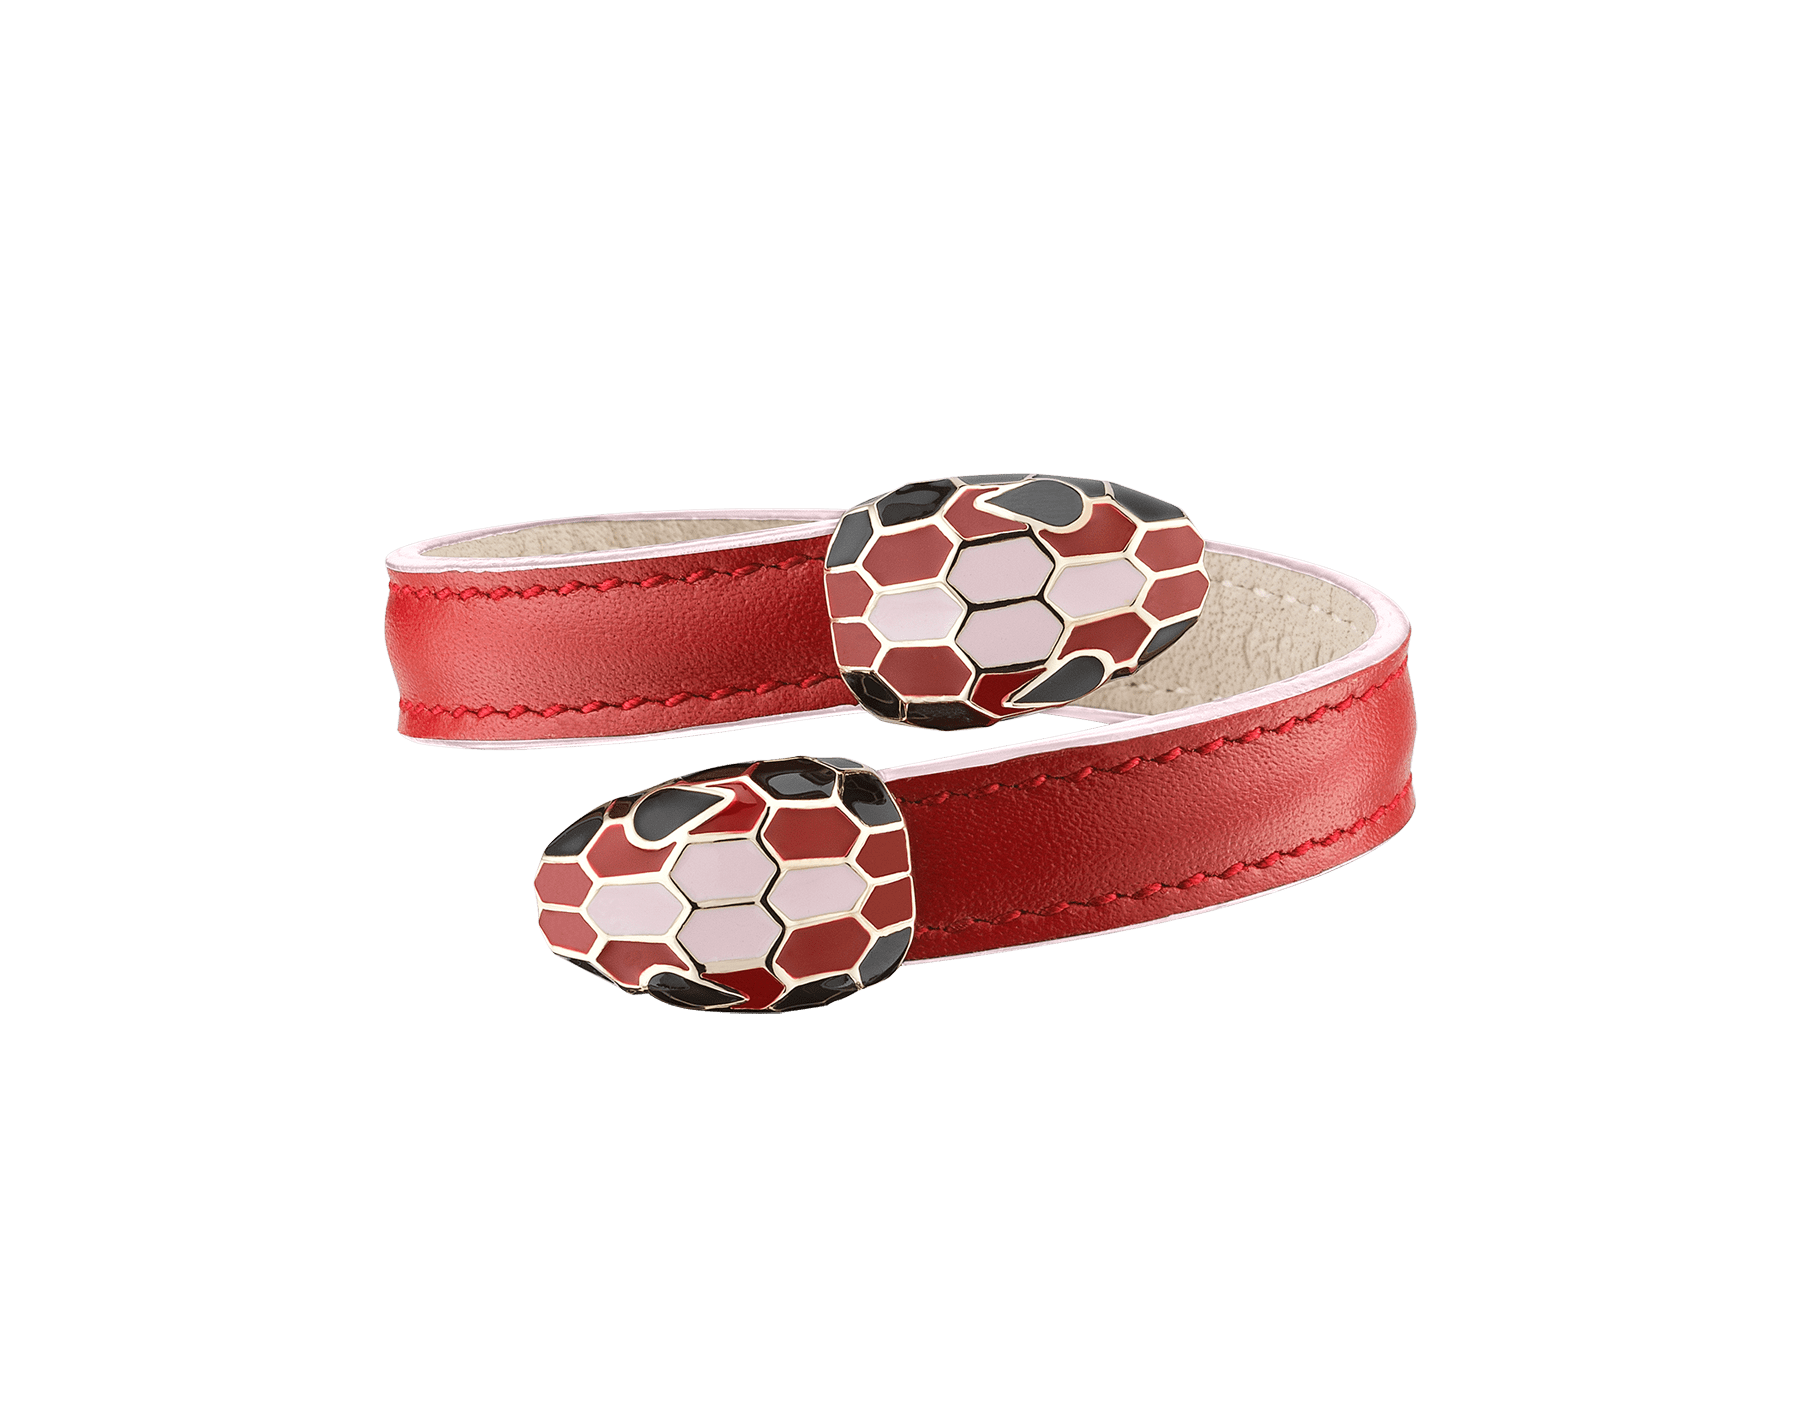 Serpenti Forever Celebration Edition soft bangle bracelet in carmine jasper calf leather and rosa di Francia edges, with light gold plated brass hardware. Contraire double snakehead décor with black, carmine jasper and rosa di Francia enamel, and black enamel eyes. 289544 image 1